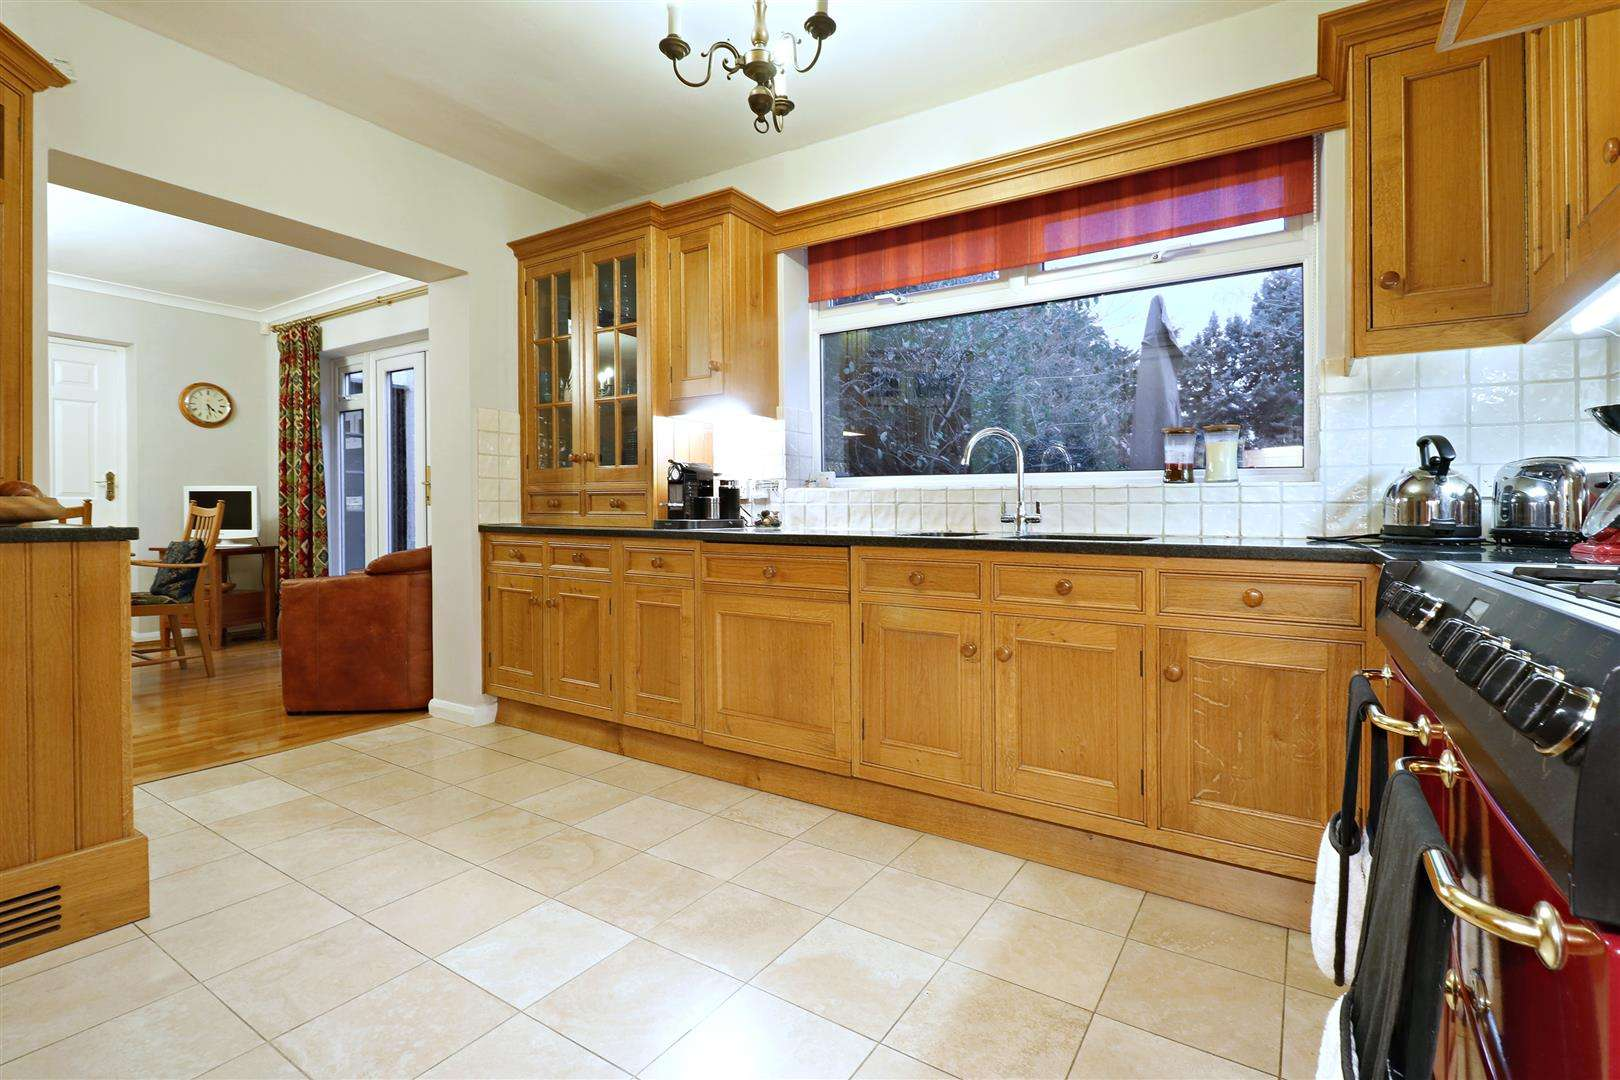 5 bed for sale - (Property Image 4)